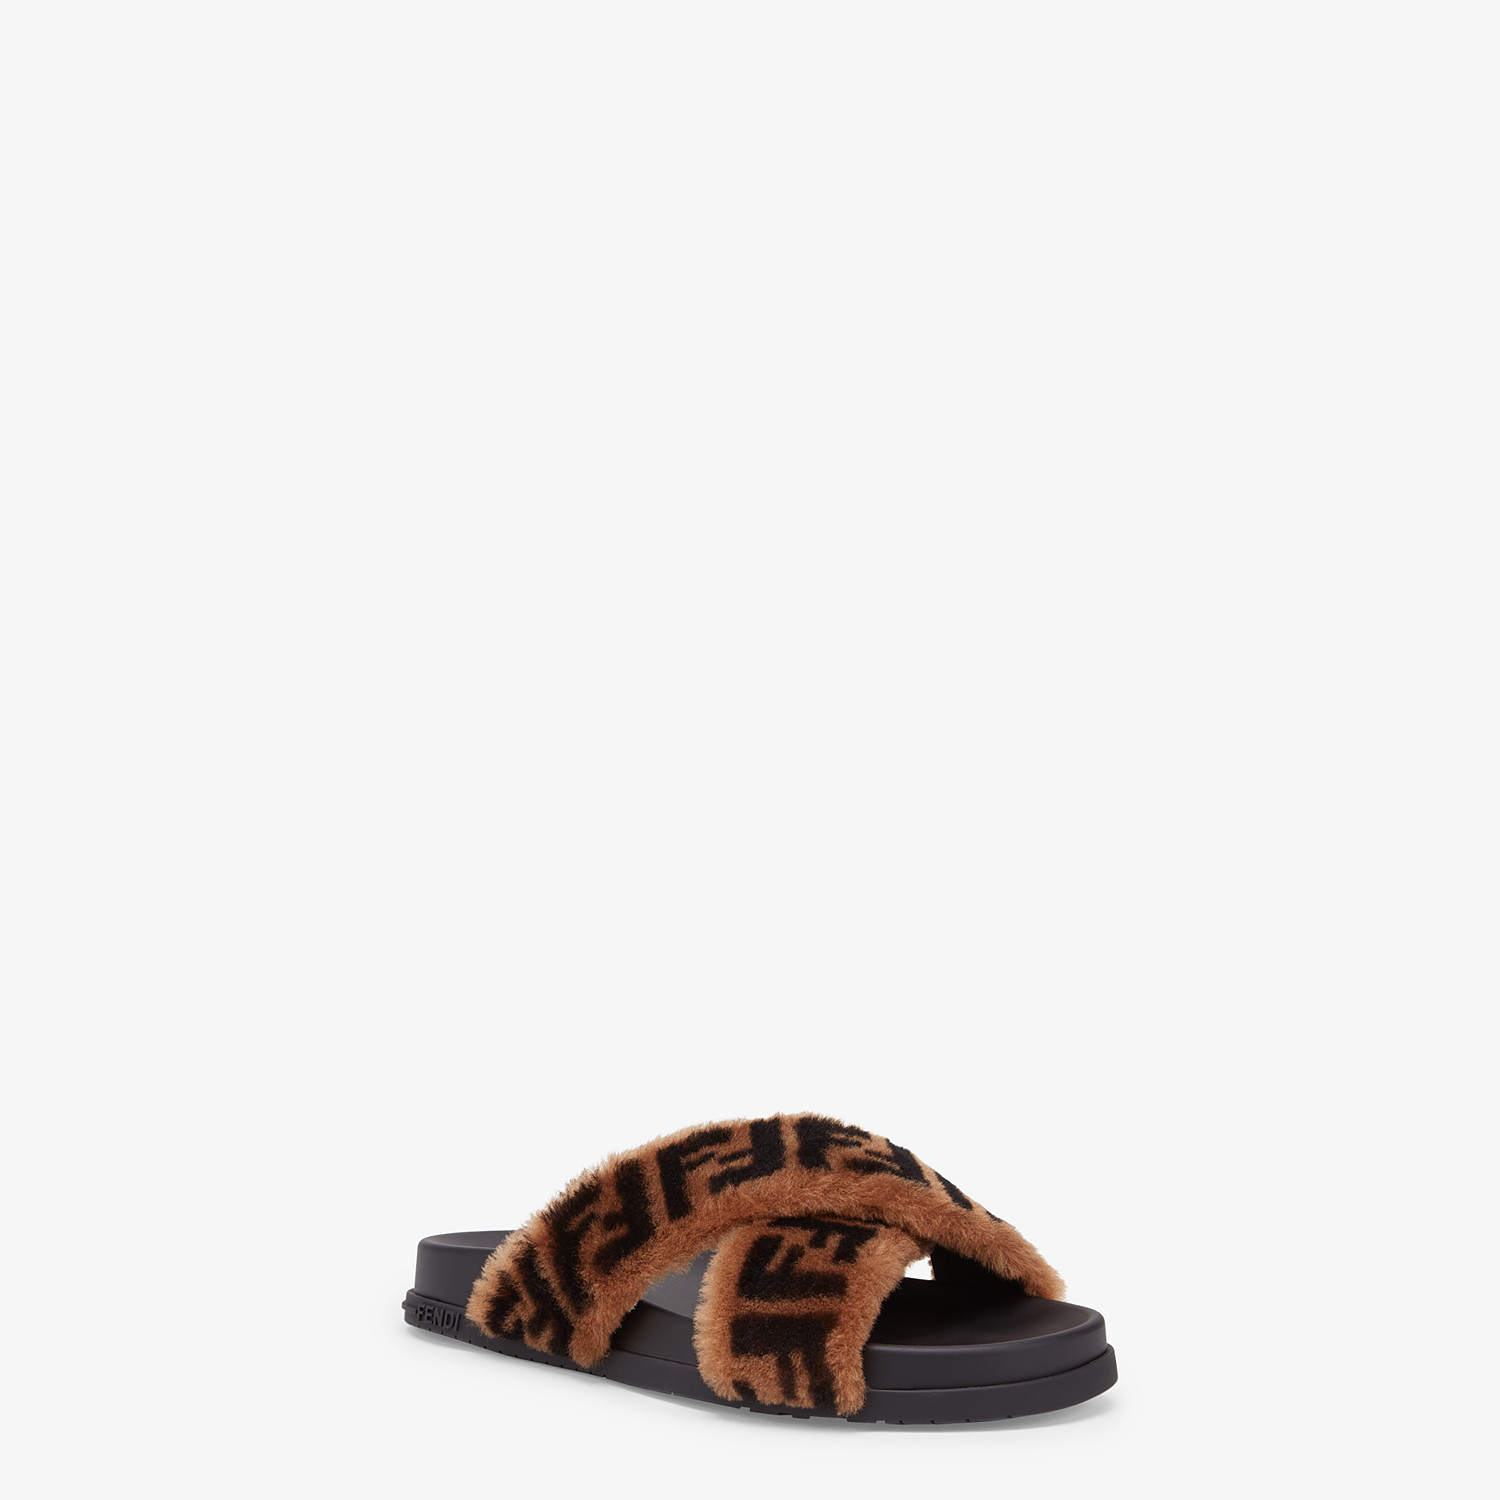 FENDI SLIDES - Brown sheepskin slides - view 2 detail